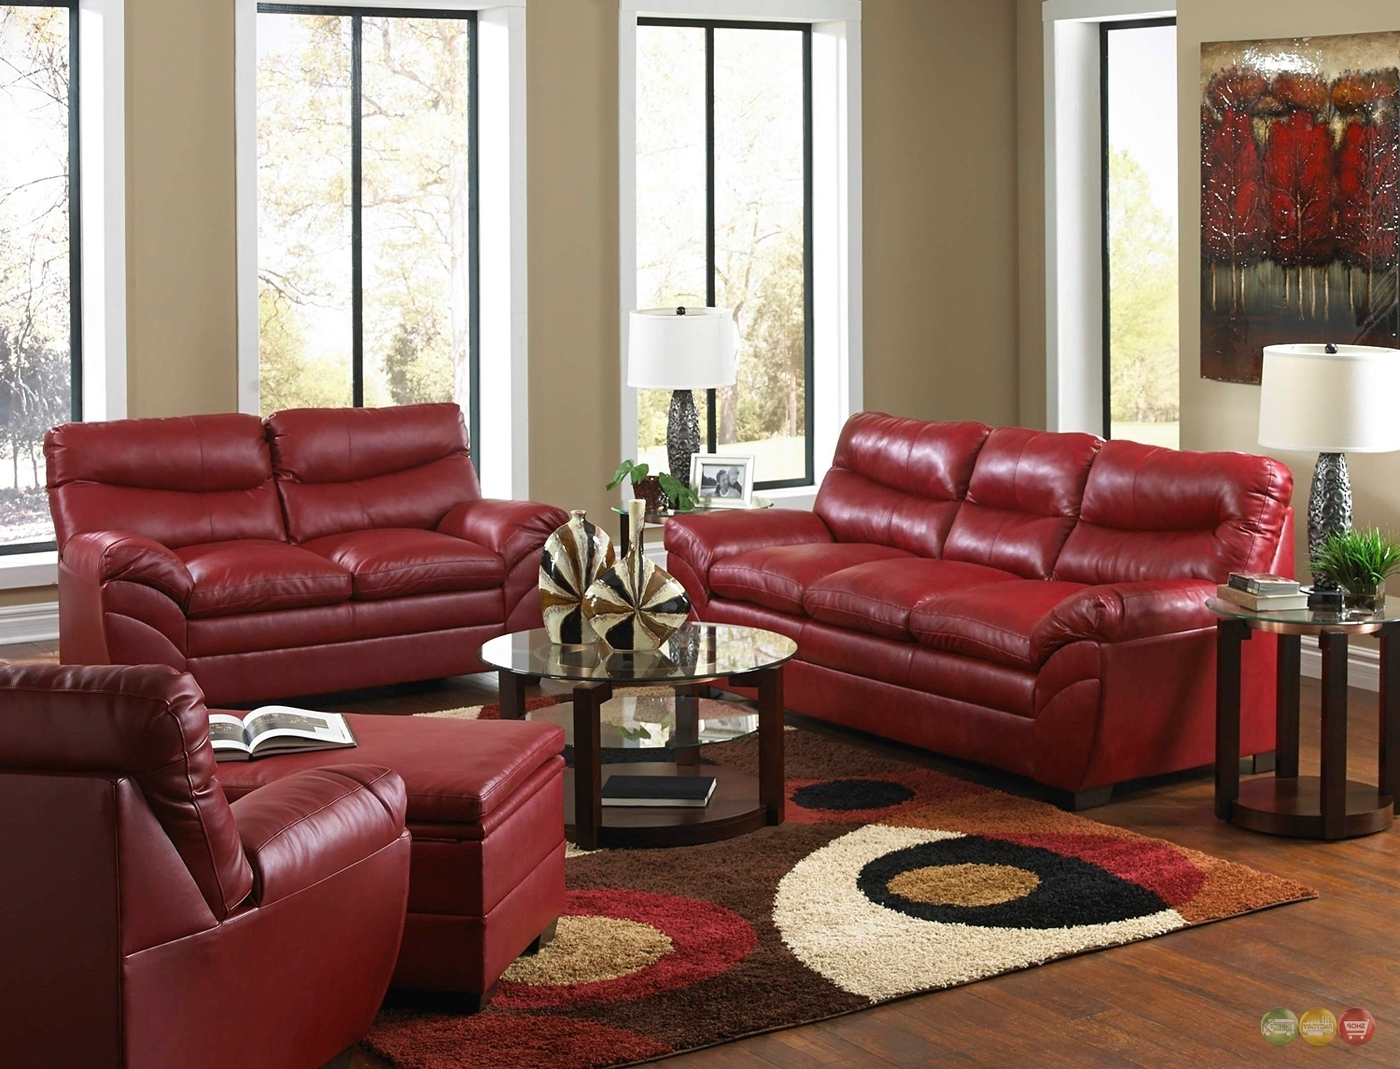 Red Leather Sofa Living Room Design (View 13 of 15)